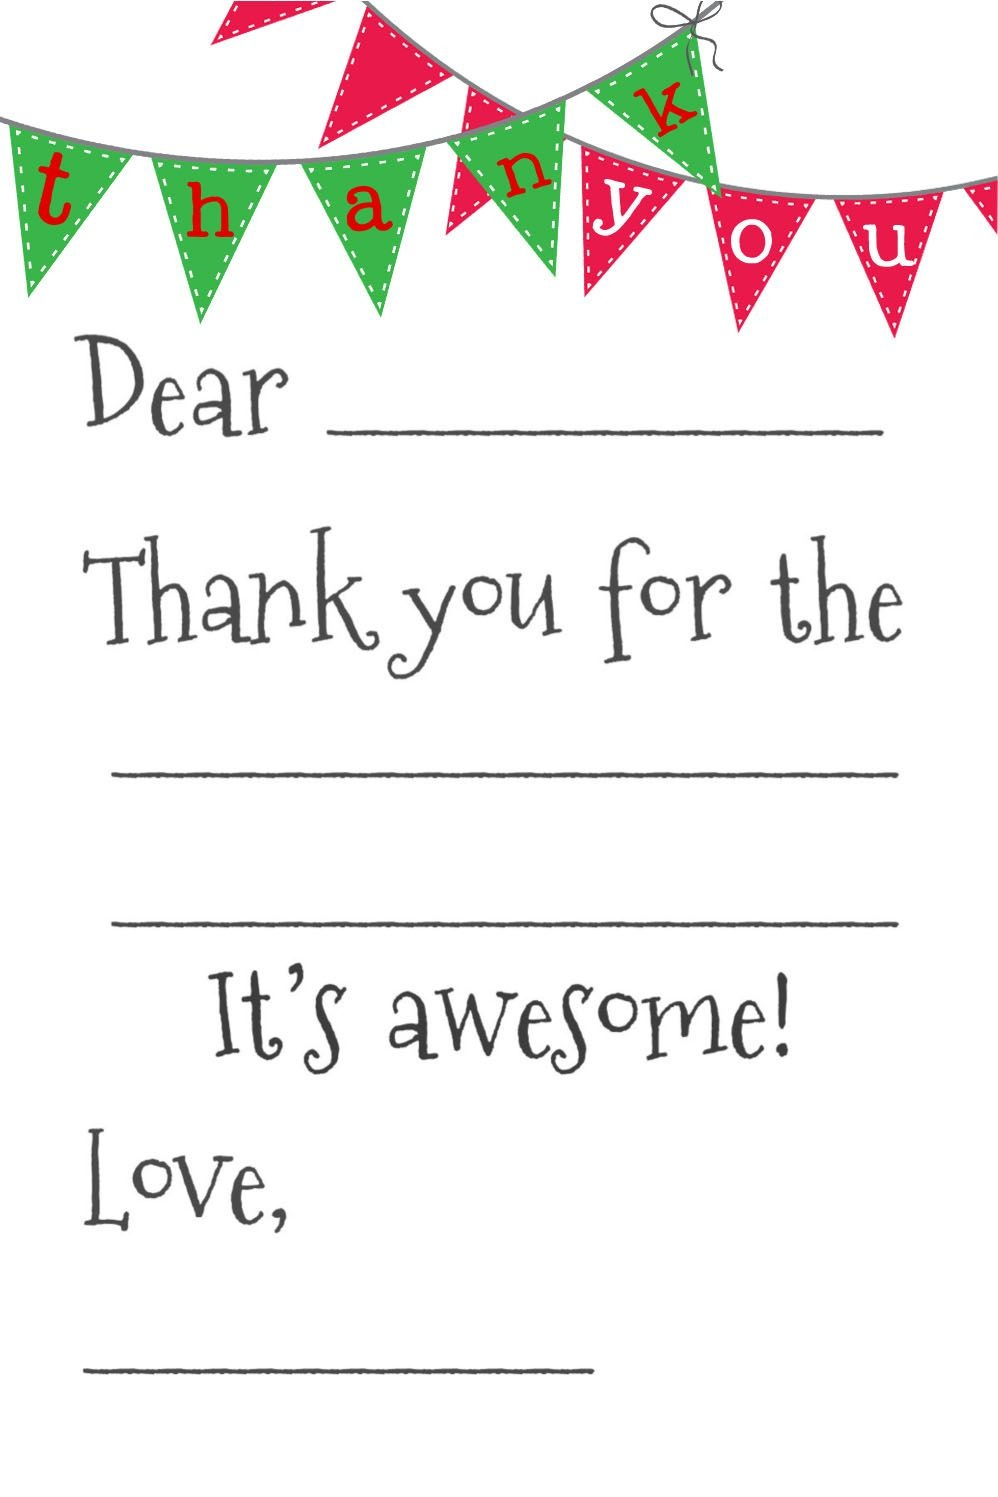 Free Fill-In-The-Blank Thank-You Cards   Printables   Free Thank You - Free Printable Thank You Cards For Soldiers